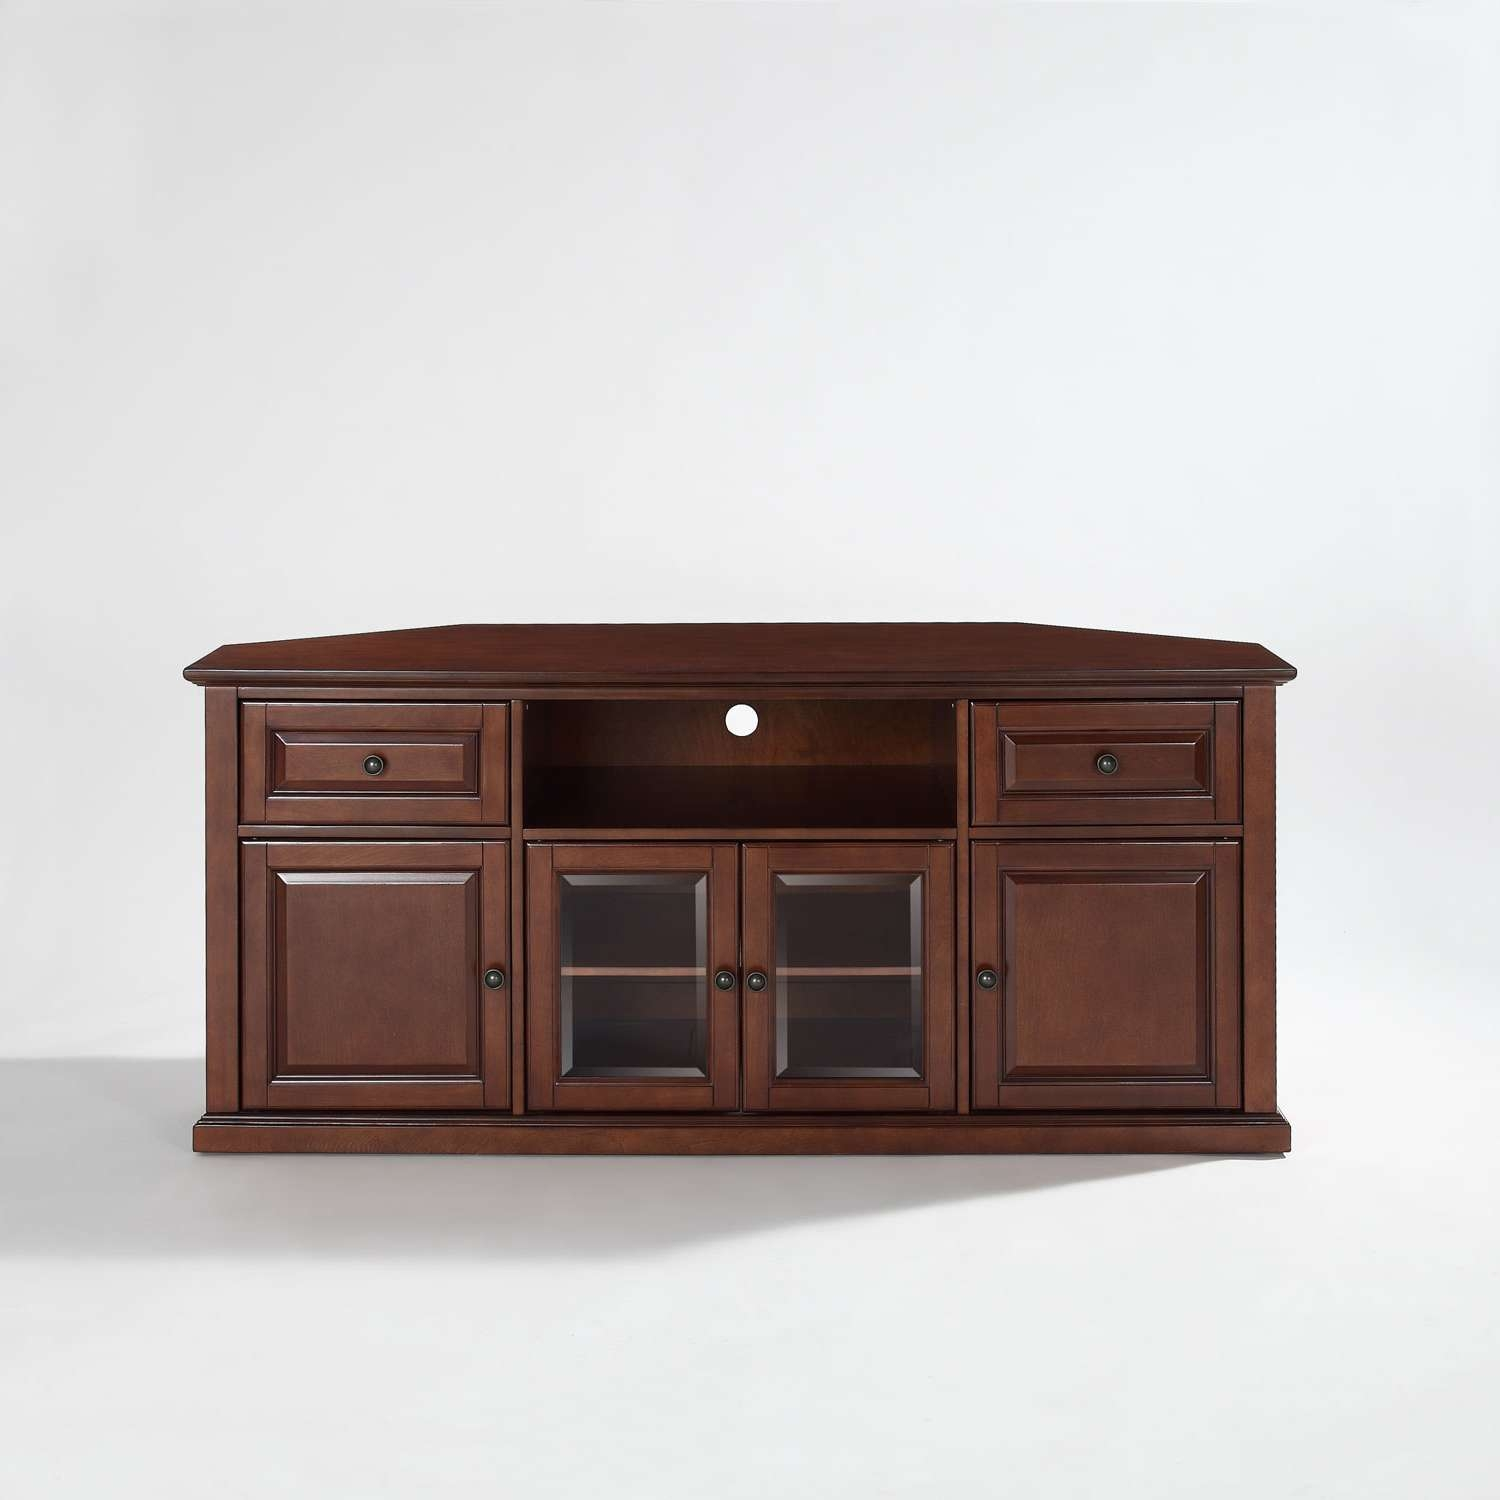 60 Inch Corner Tv Stand In Vintage Mahogany Crosley Furniture Throughout Wooden Corner Tv Stands (View 2 of 20)